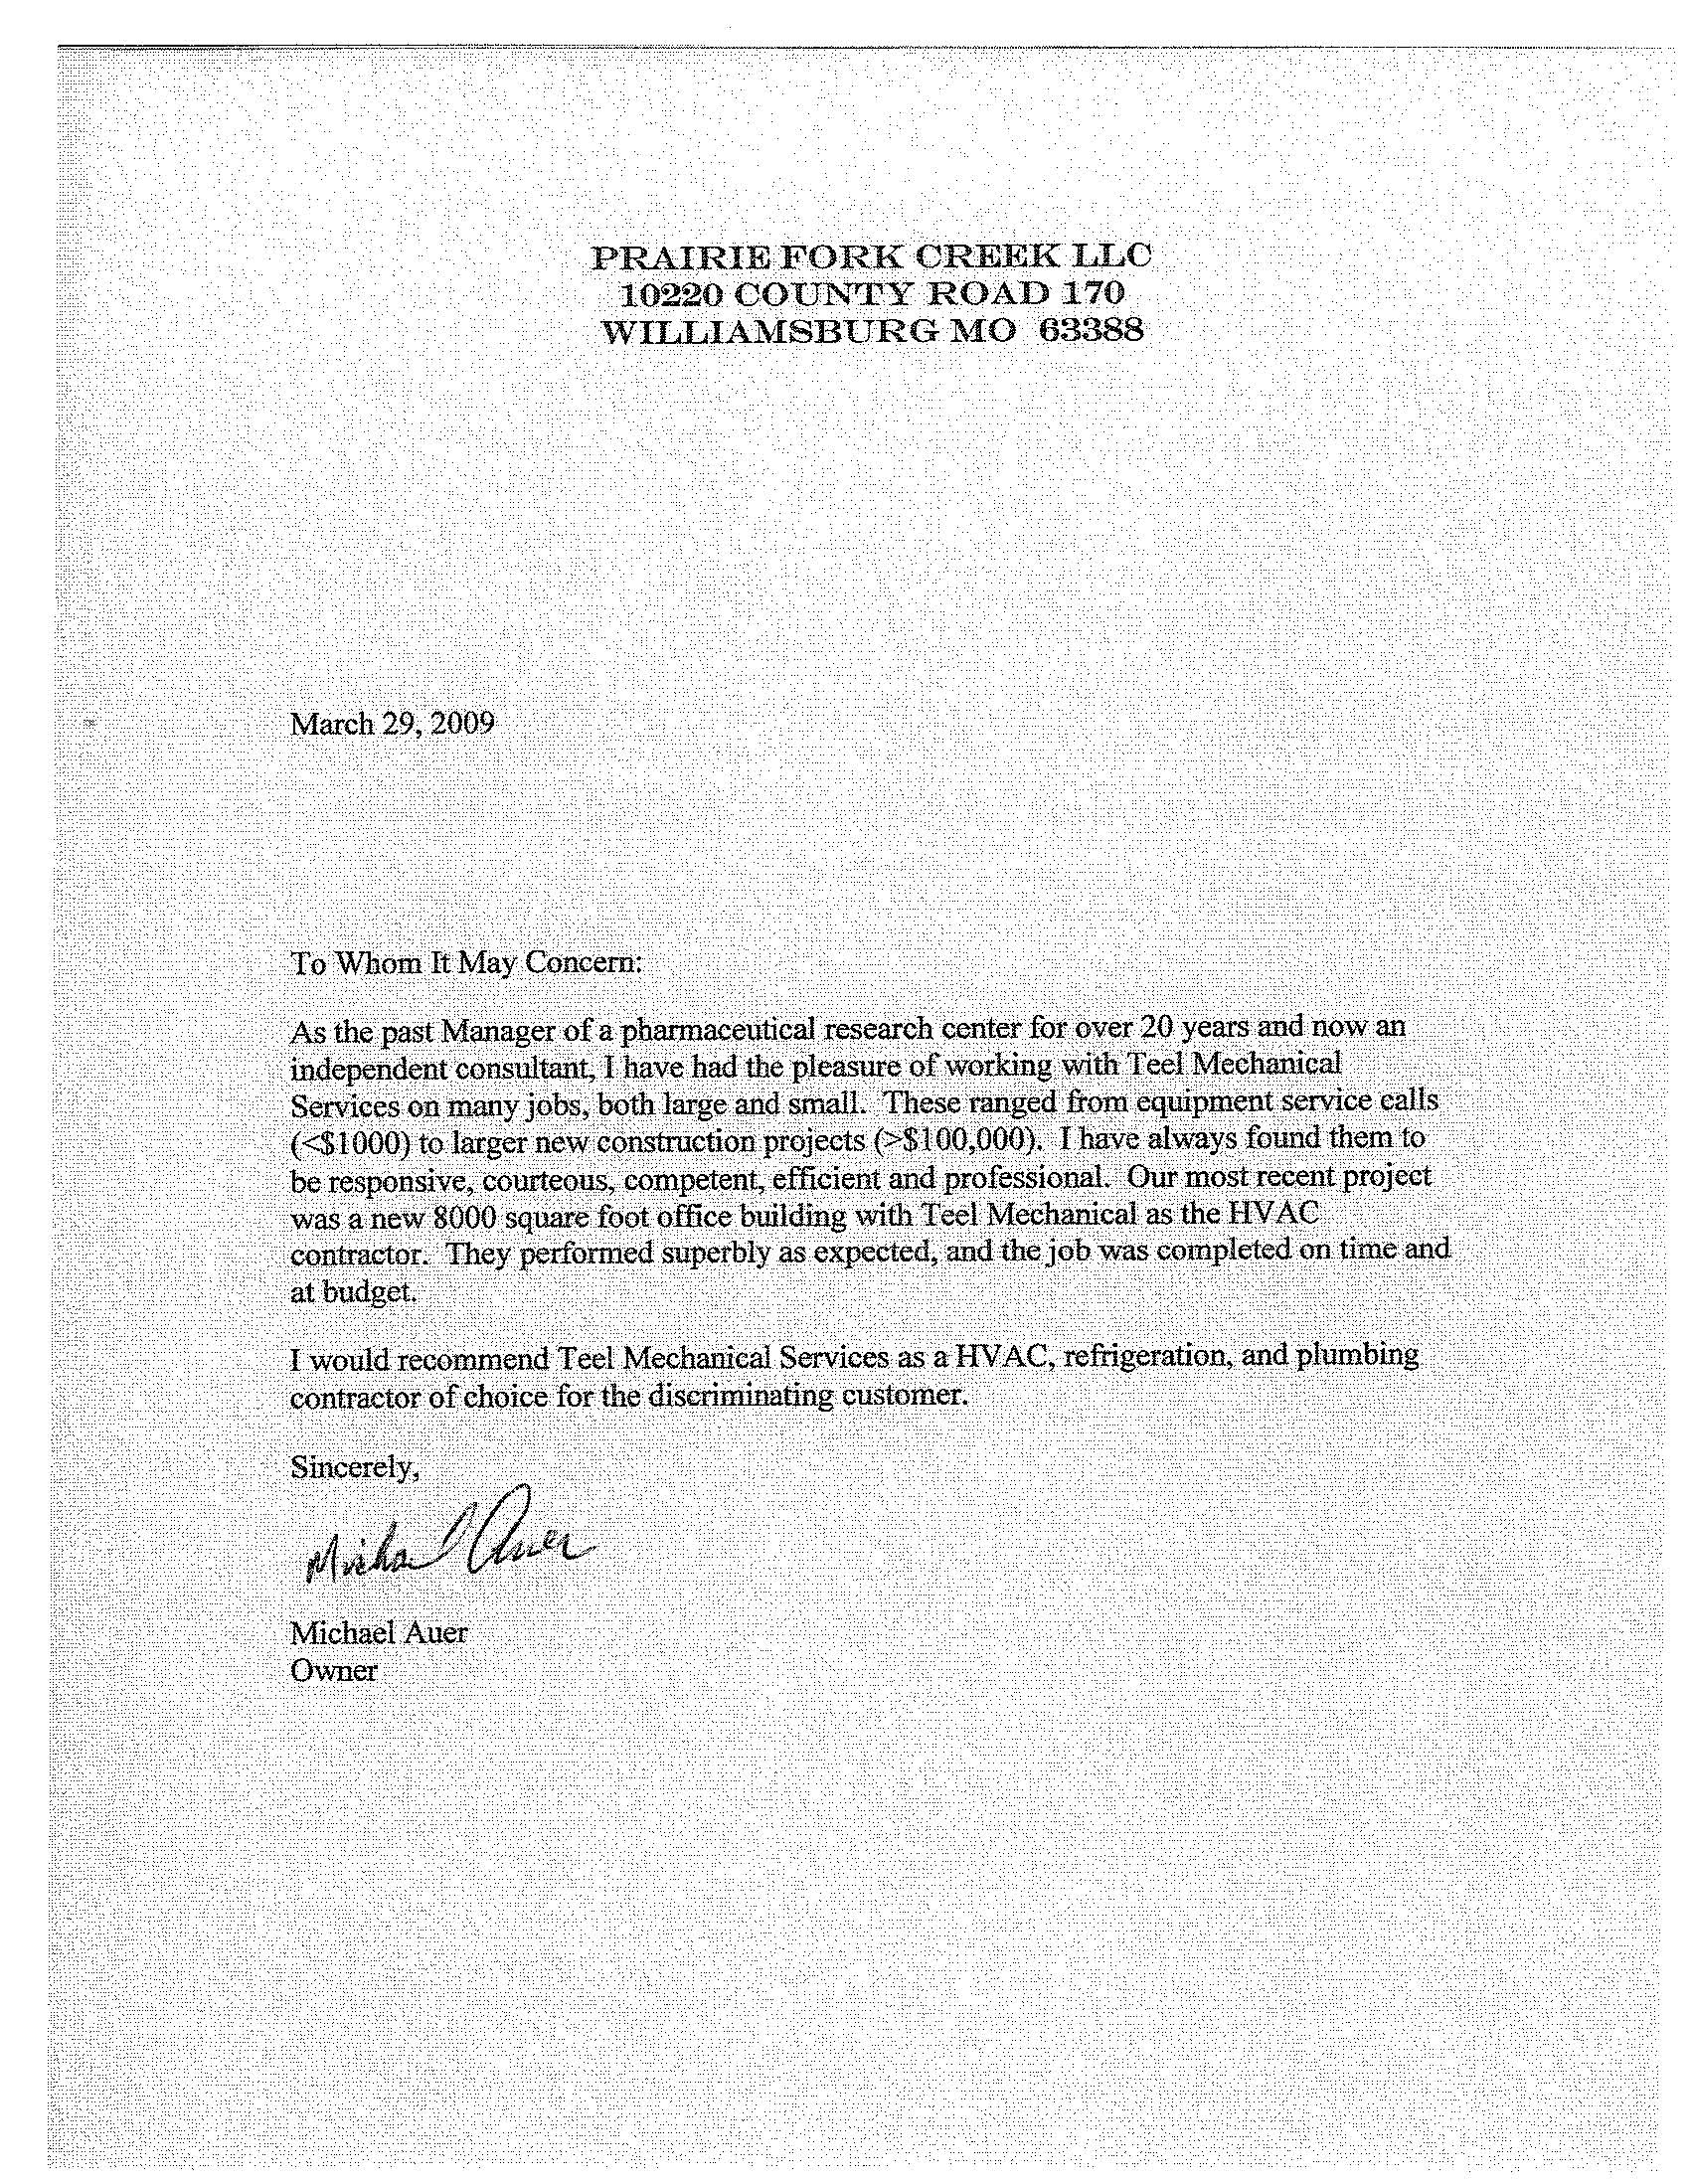 LETTER OF RECOMMENDATION – MIKE AUER